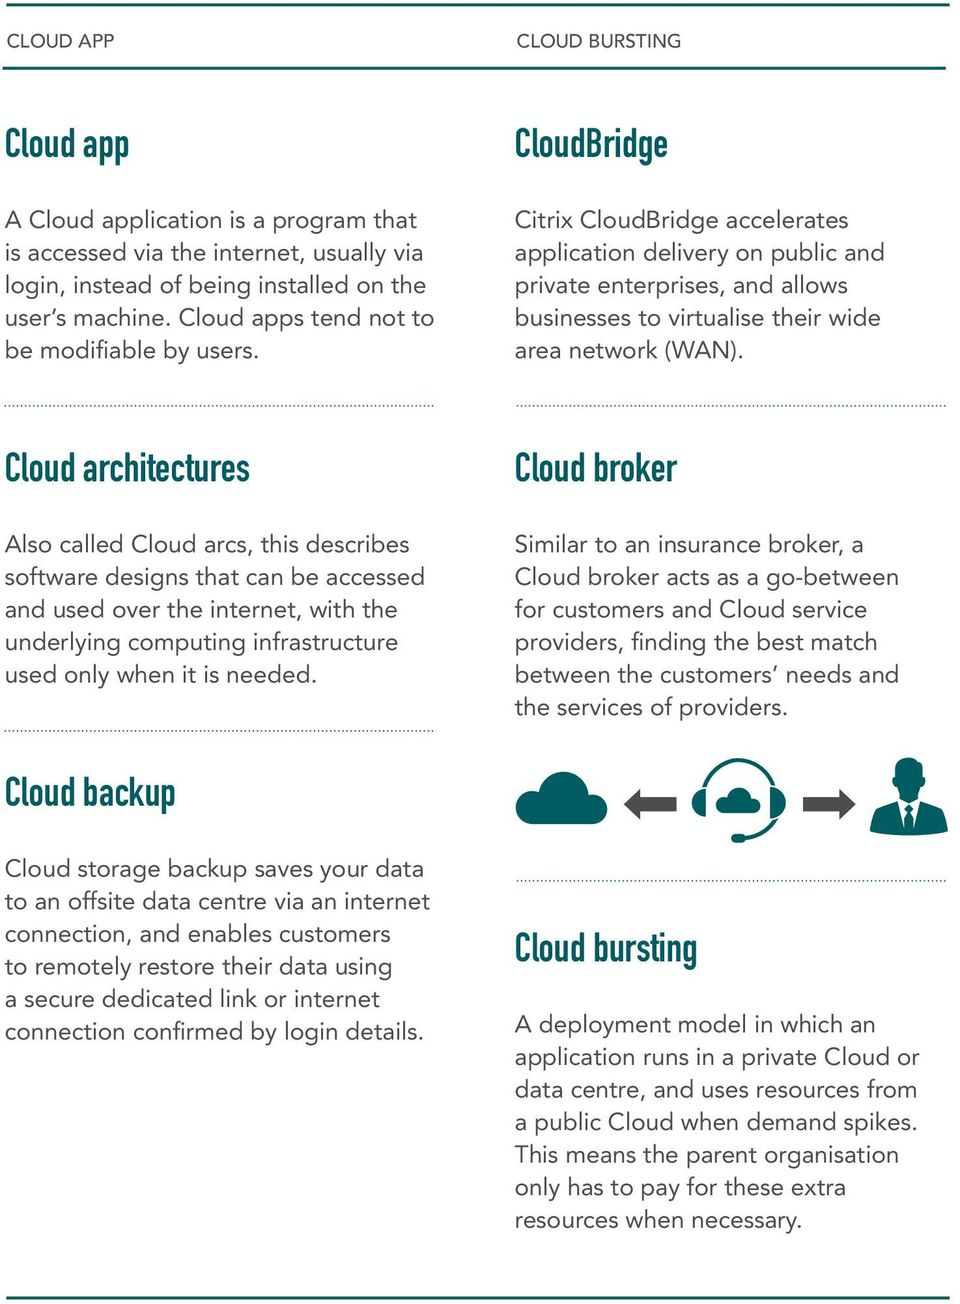 CloudBridge Citrix CloudBridge accelerates application delivery on public and private enterprises, and allows businesses to virtualise their wide area network (WAN).